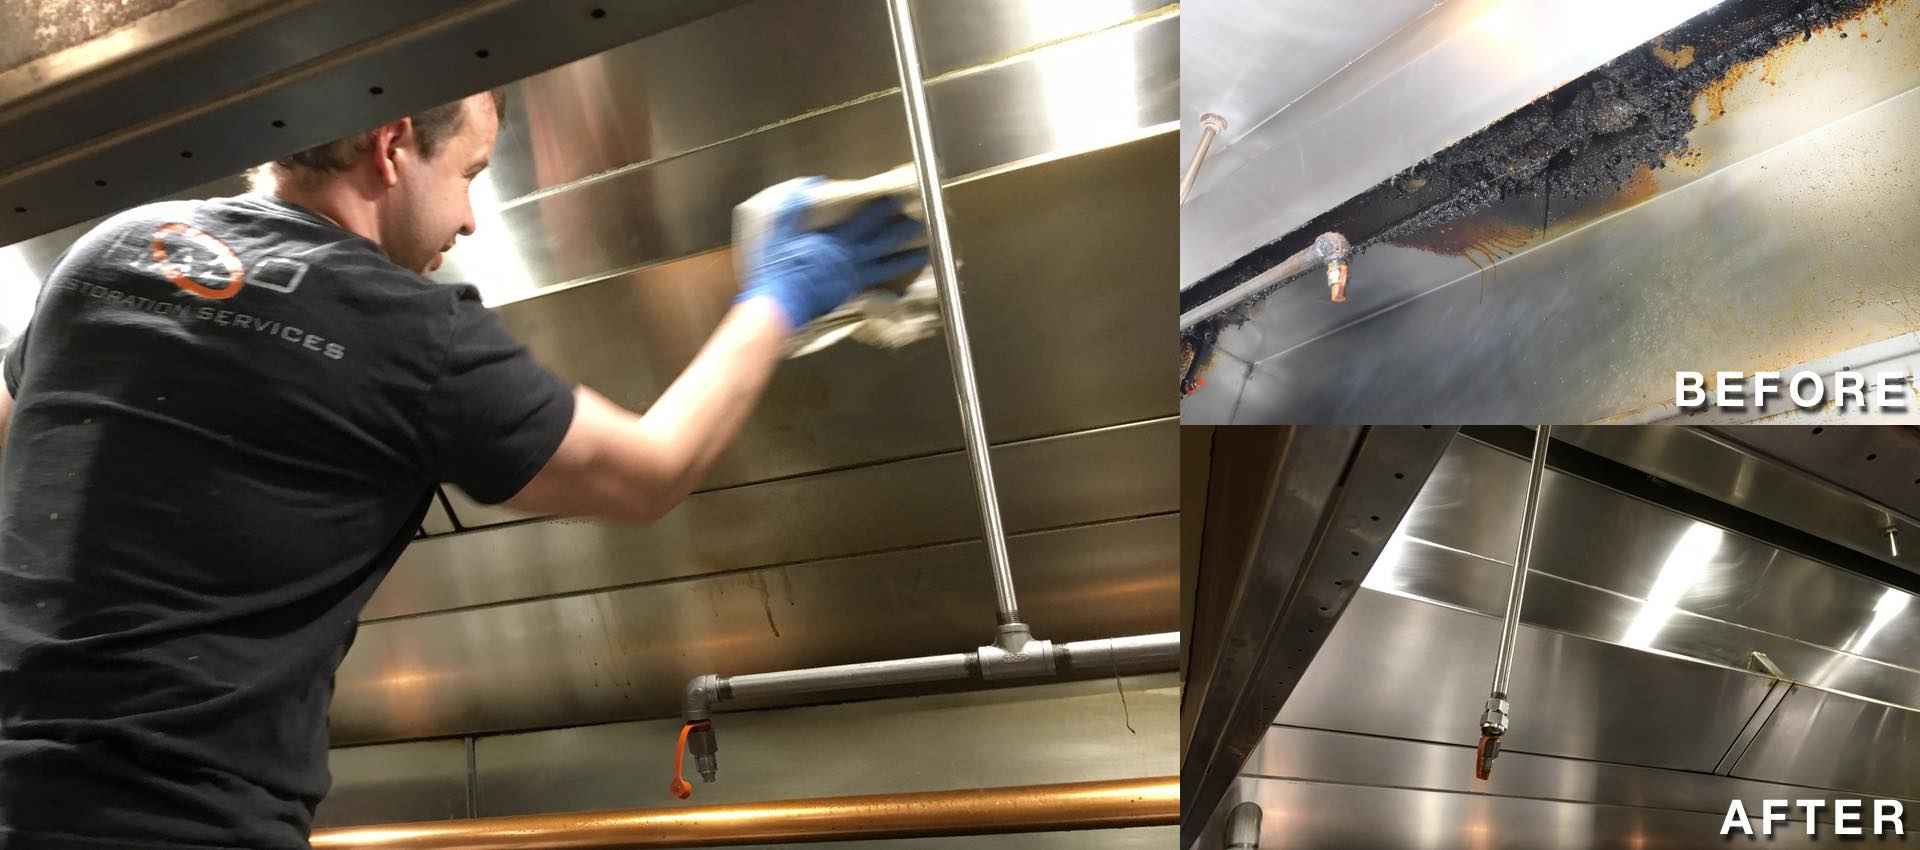 Cleaning A Commercial Kitchen Exhaust Hood System In Dallas, Texas